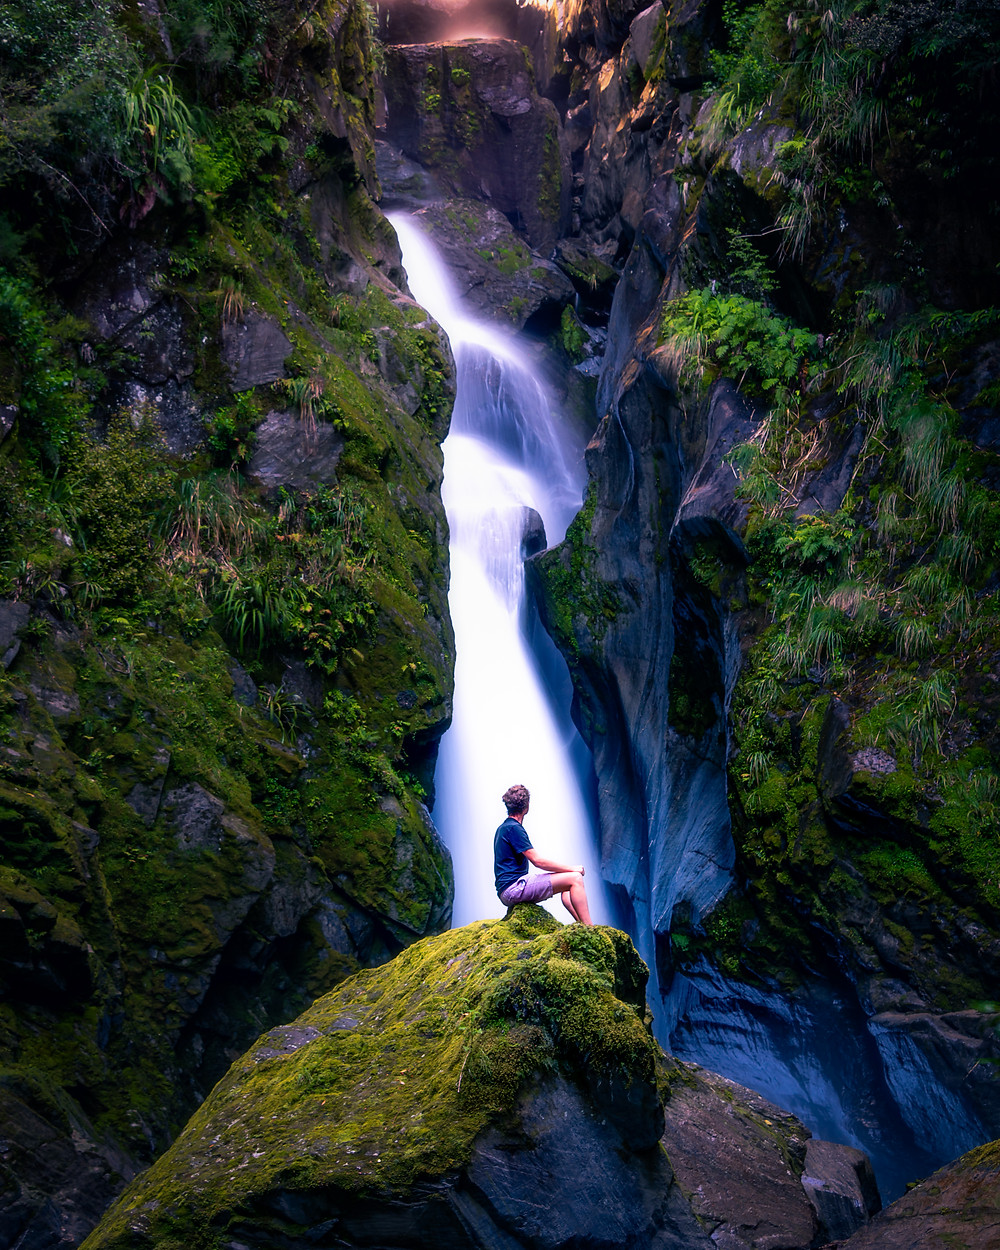 Secret Waterfall Fantail Falls West Coast New Zealand Hidden Gem Off the Beaten Path Photography Man